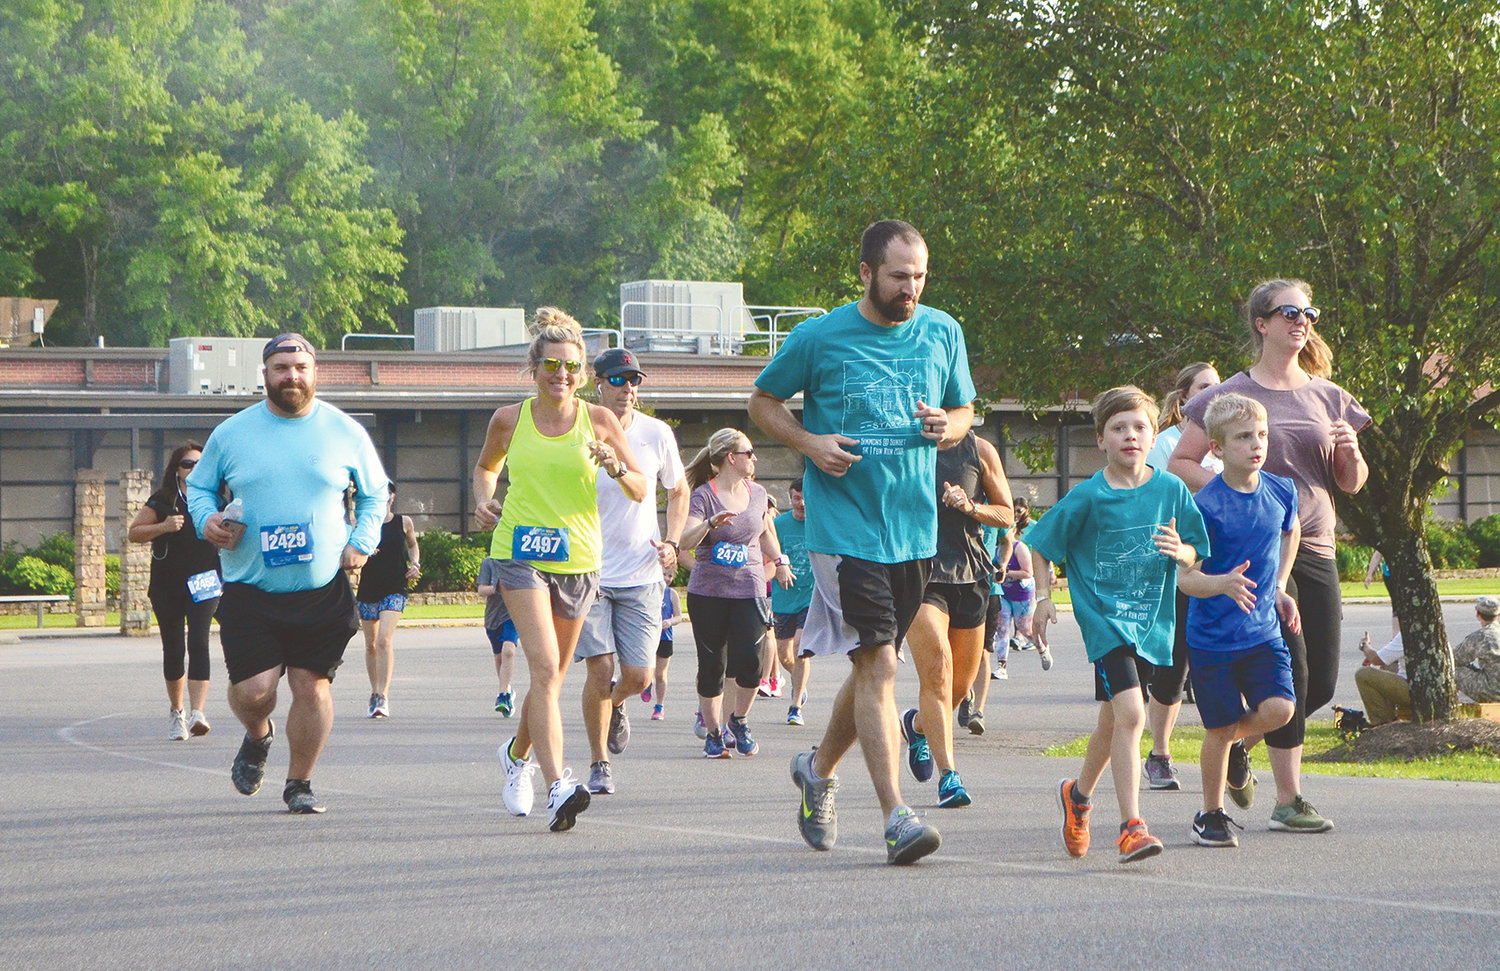 Rain held off for the Simmons @ Sunset 5K and Fun Run Friday night. Hundreds gathered for the annual event that takes runners around Jasper and raises money for T.R. Simmons Elementary School. Others gathered for fun and food on the school's campus.